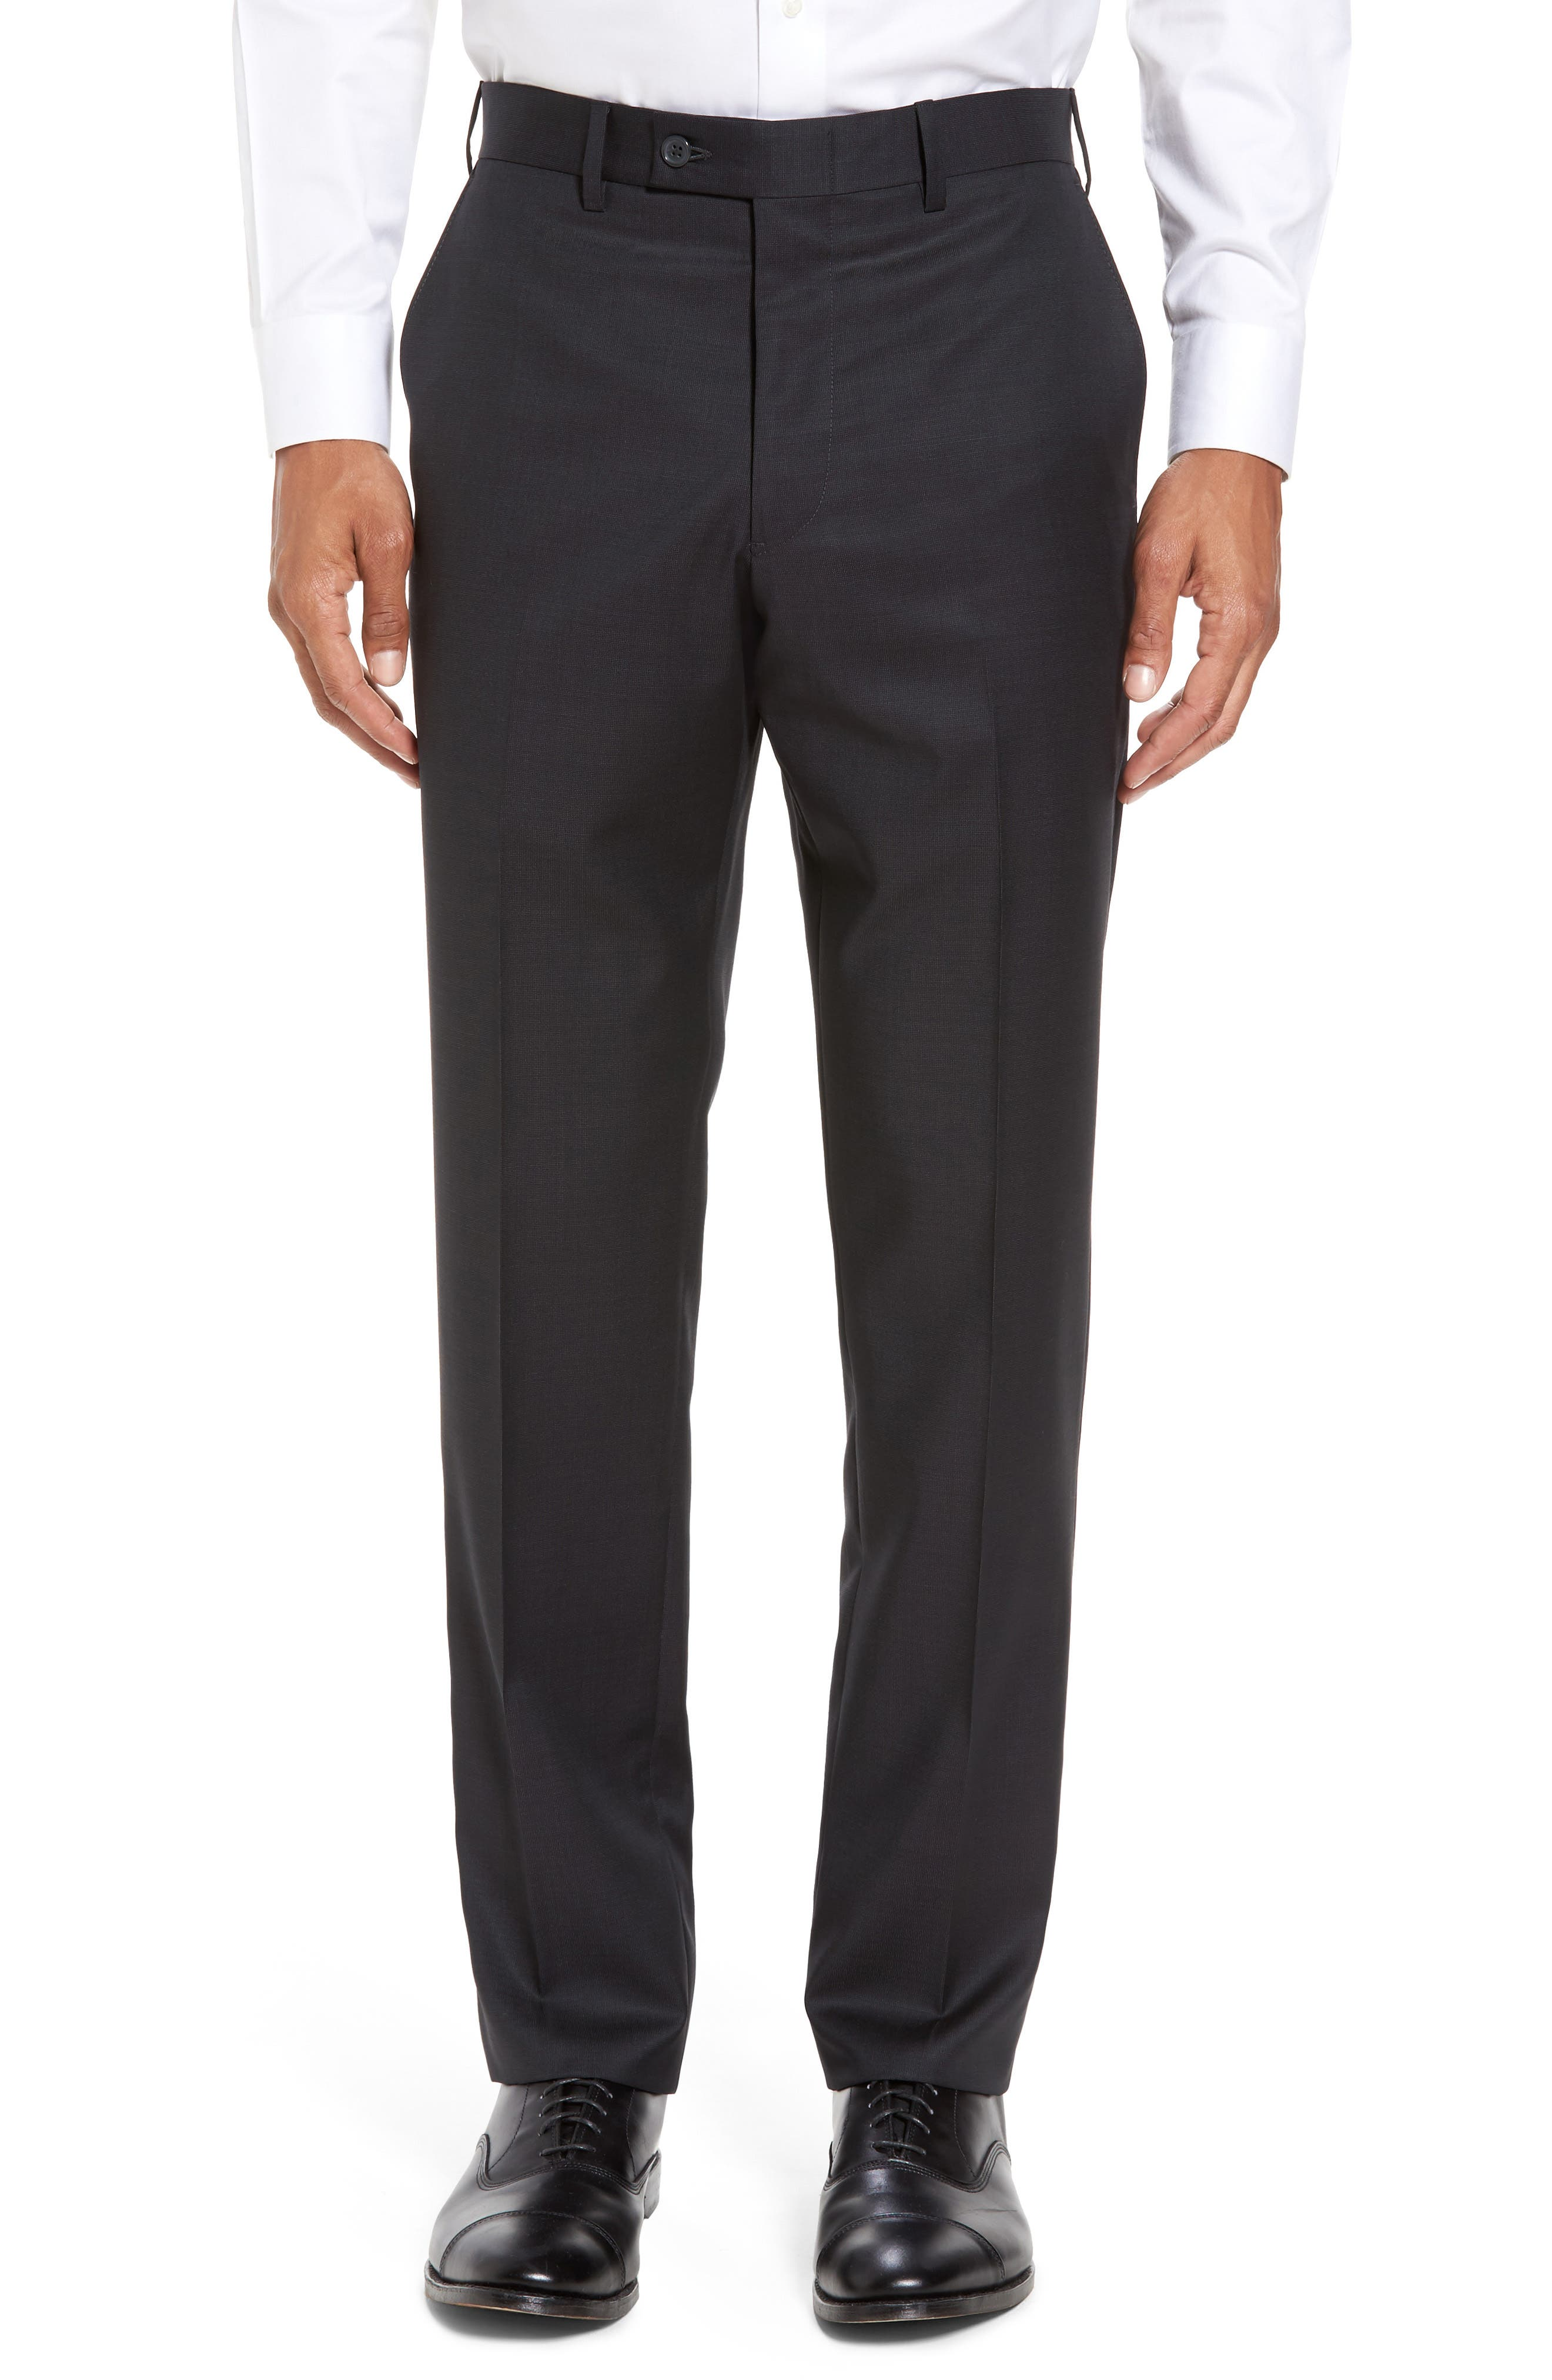 Flat Front Solid Wool Trousers,                             Main thumbnail 1, color,                             010